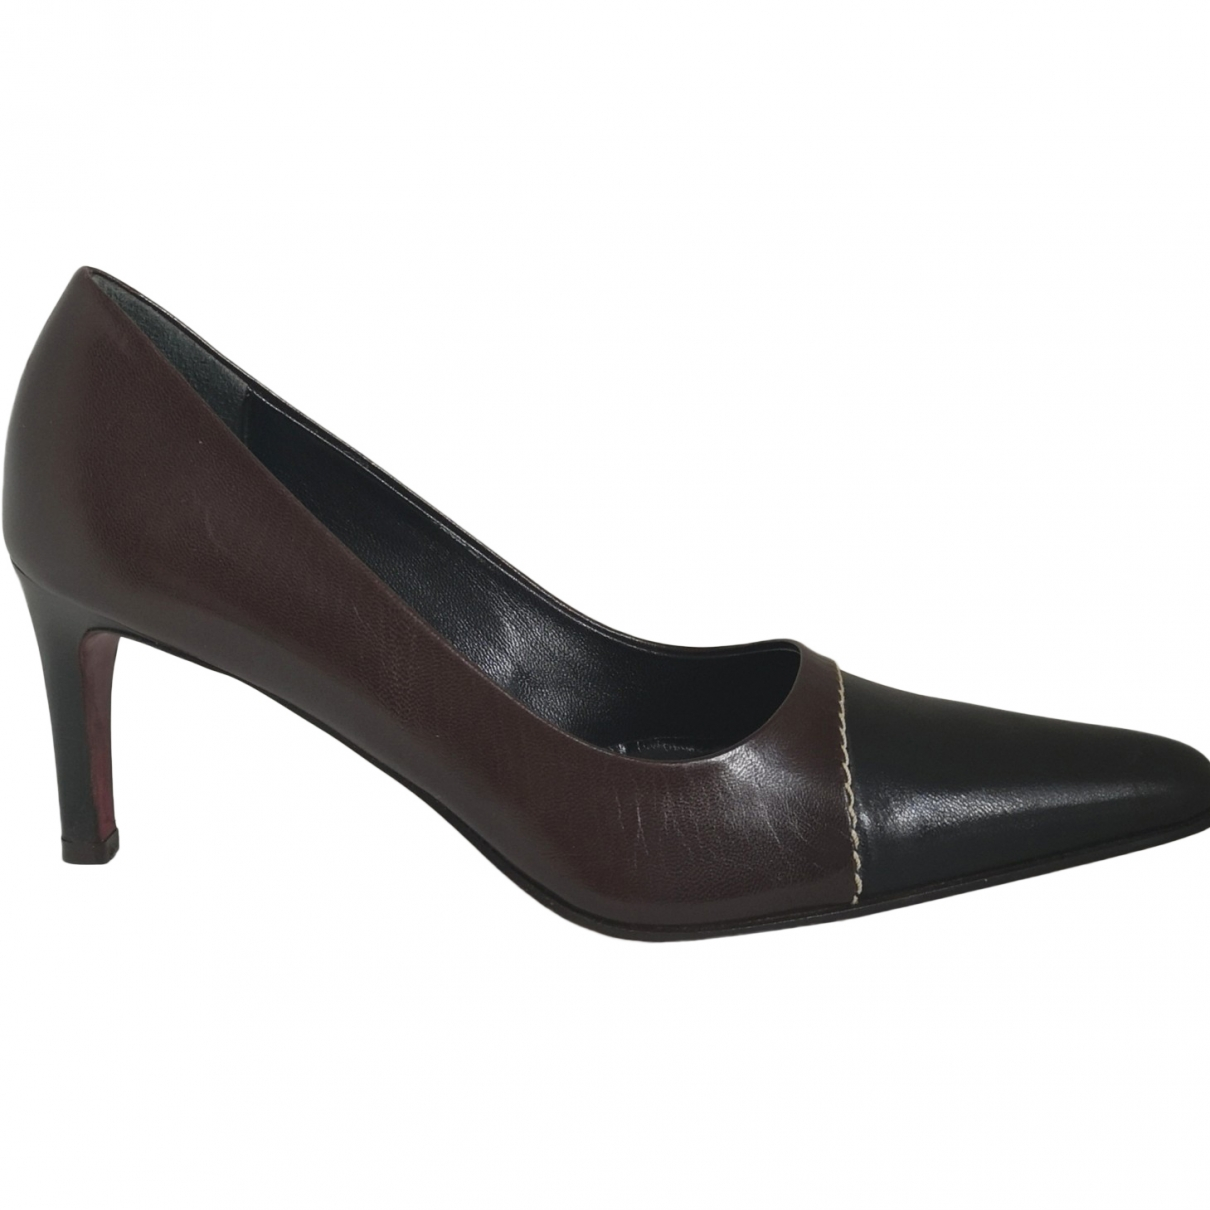 Georges Rech \N Brown Leather Heels for Women 38.5 EU